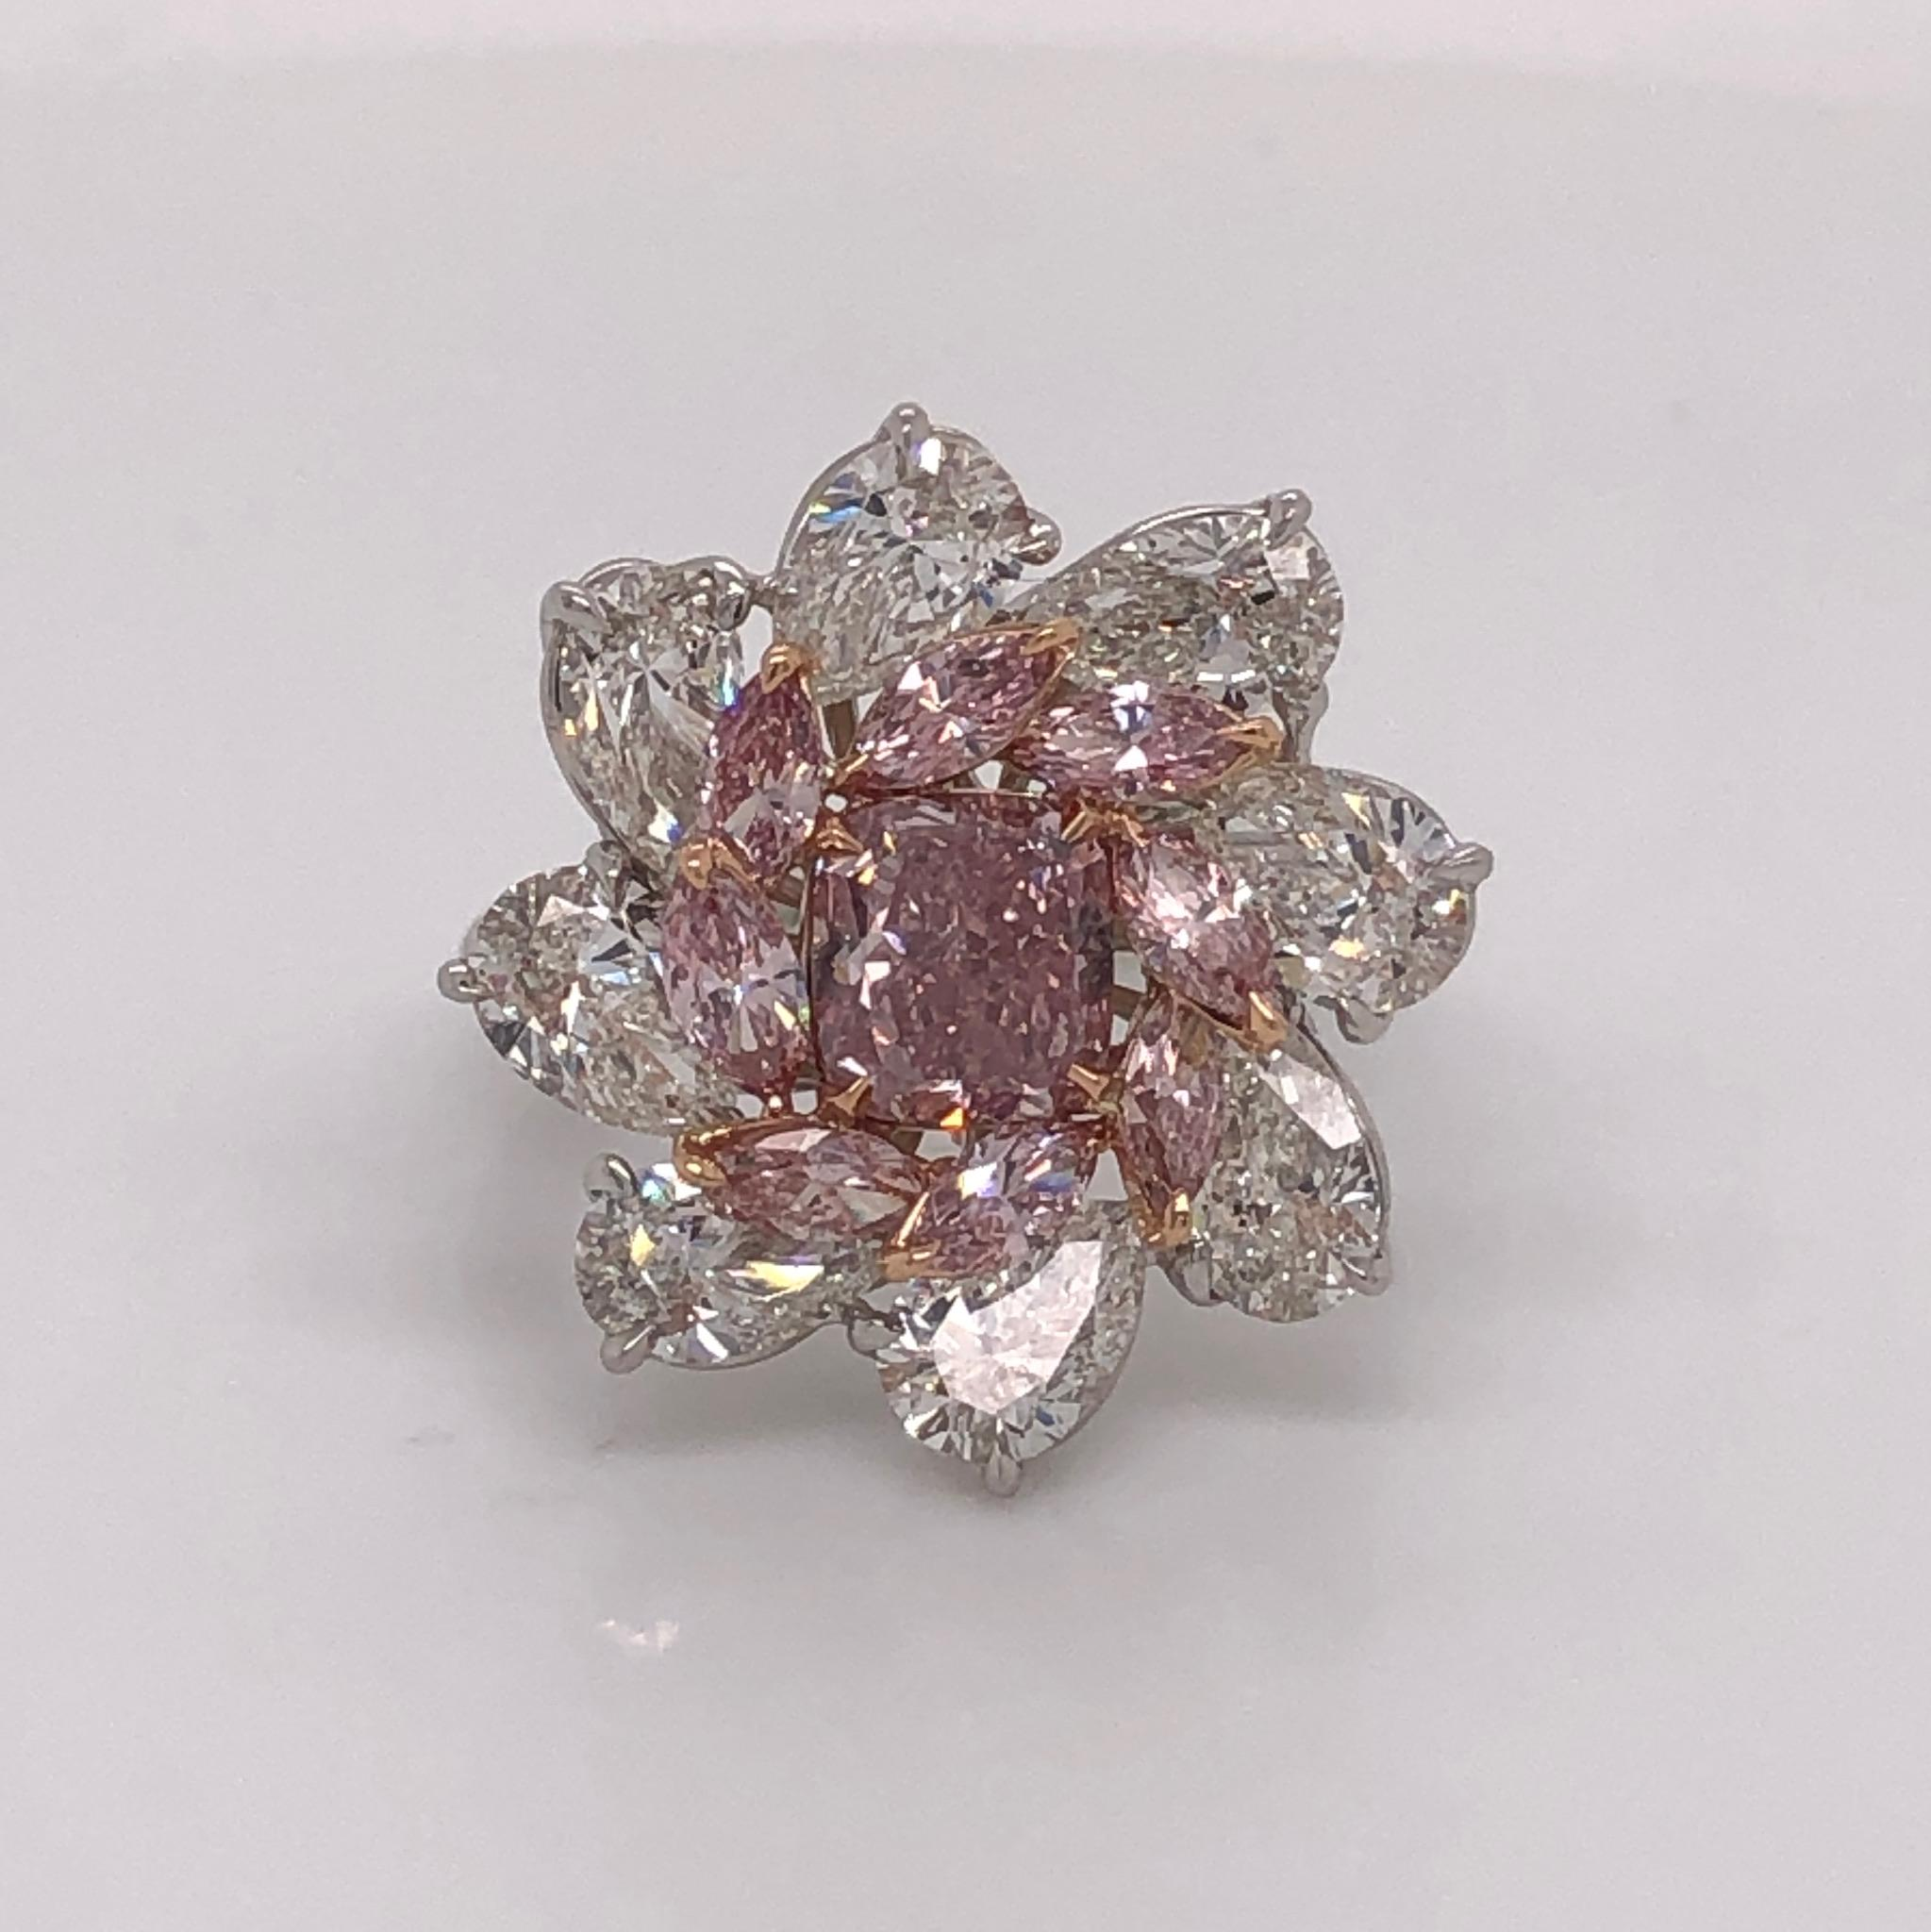 A 1.27 carat fancy intense pink diamond